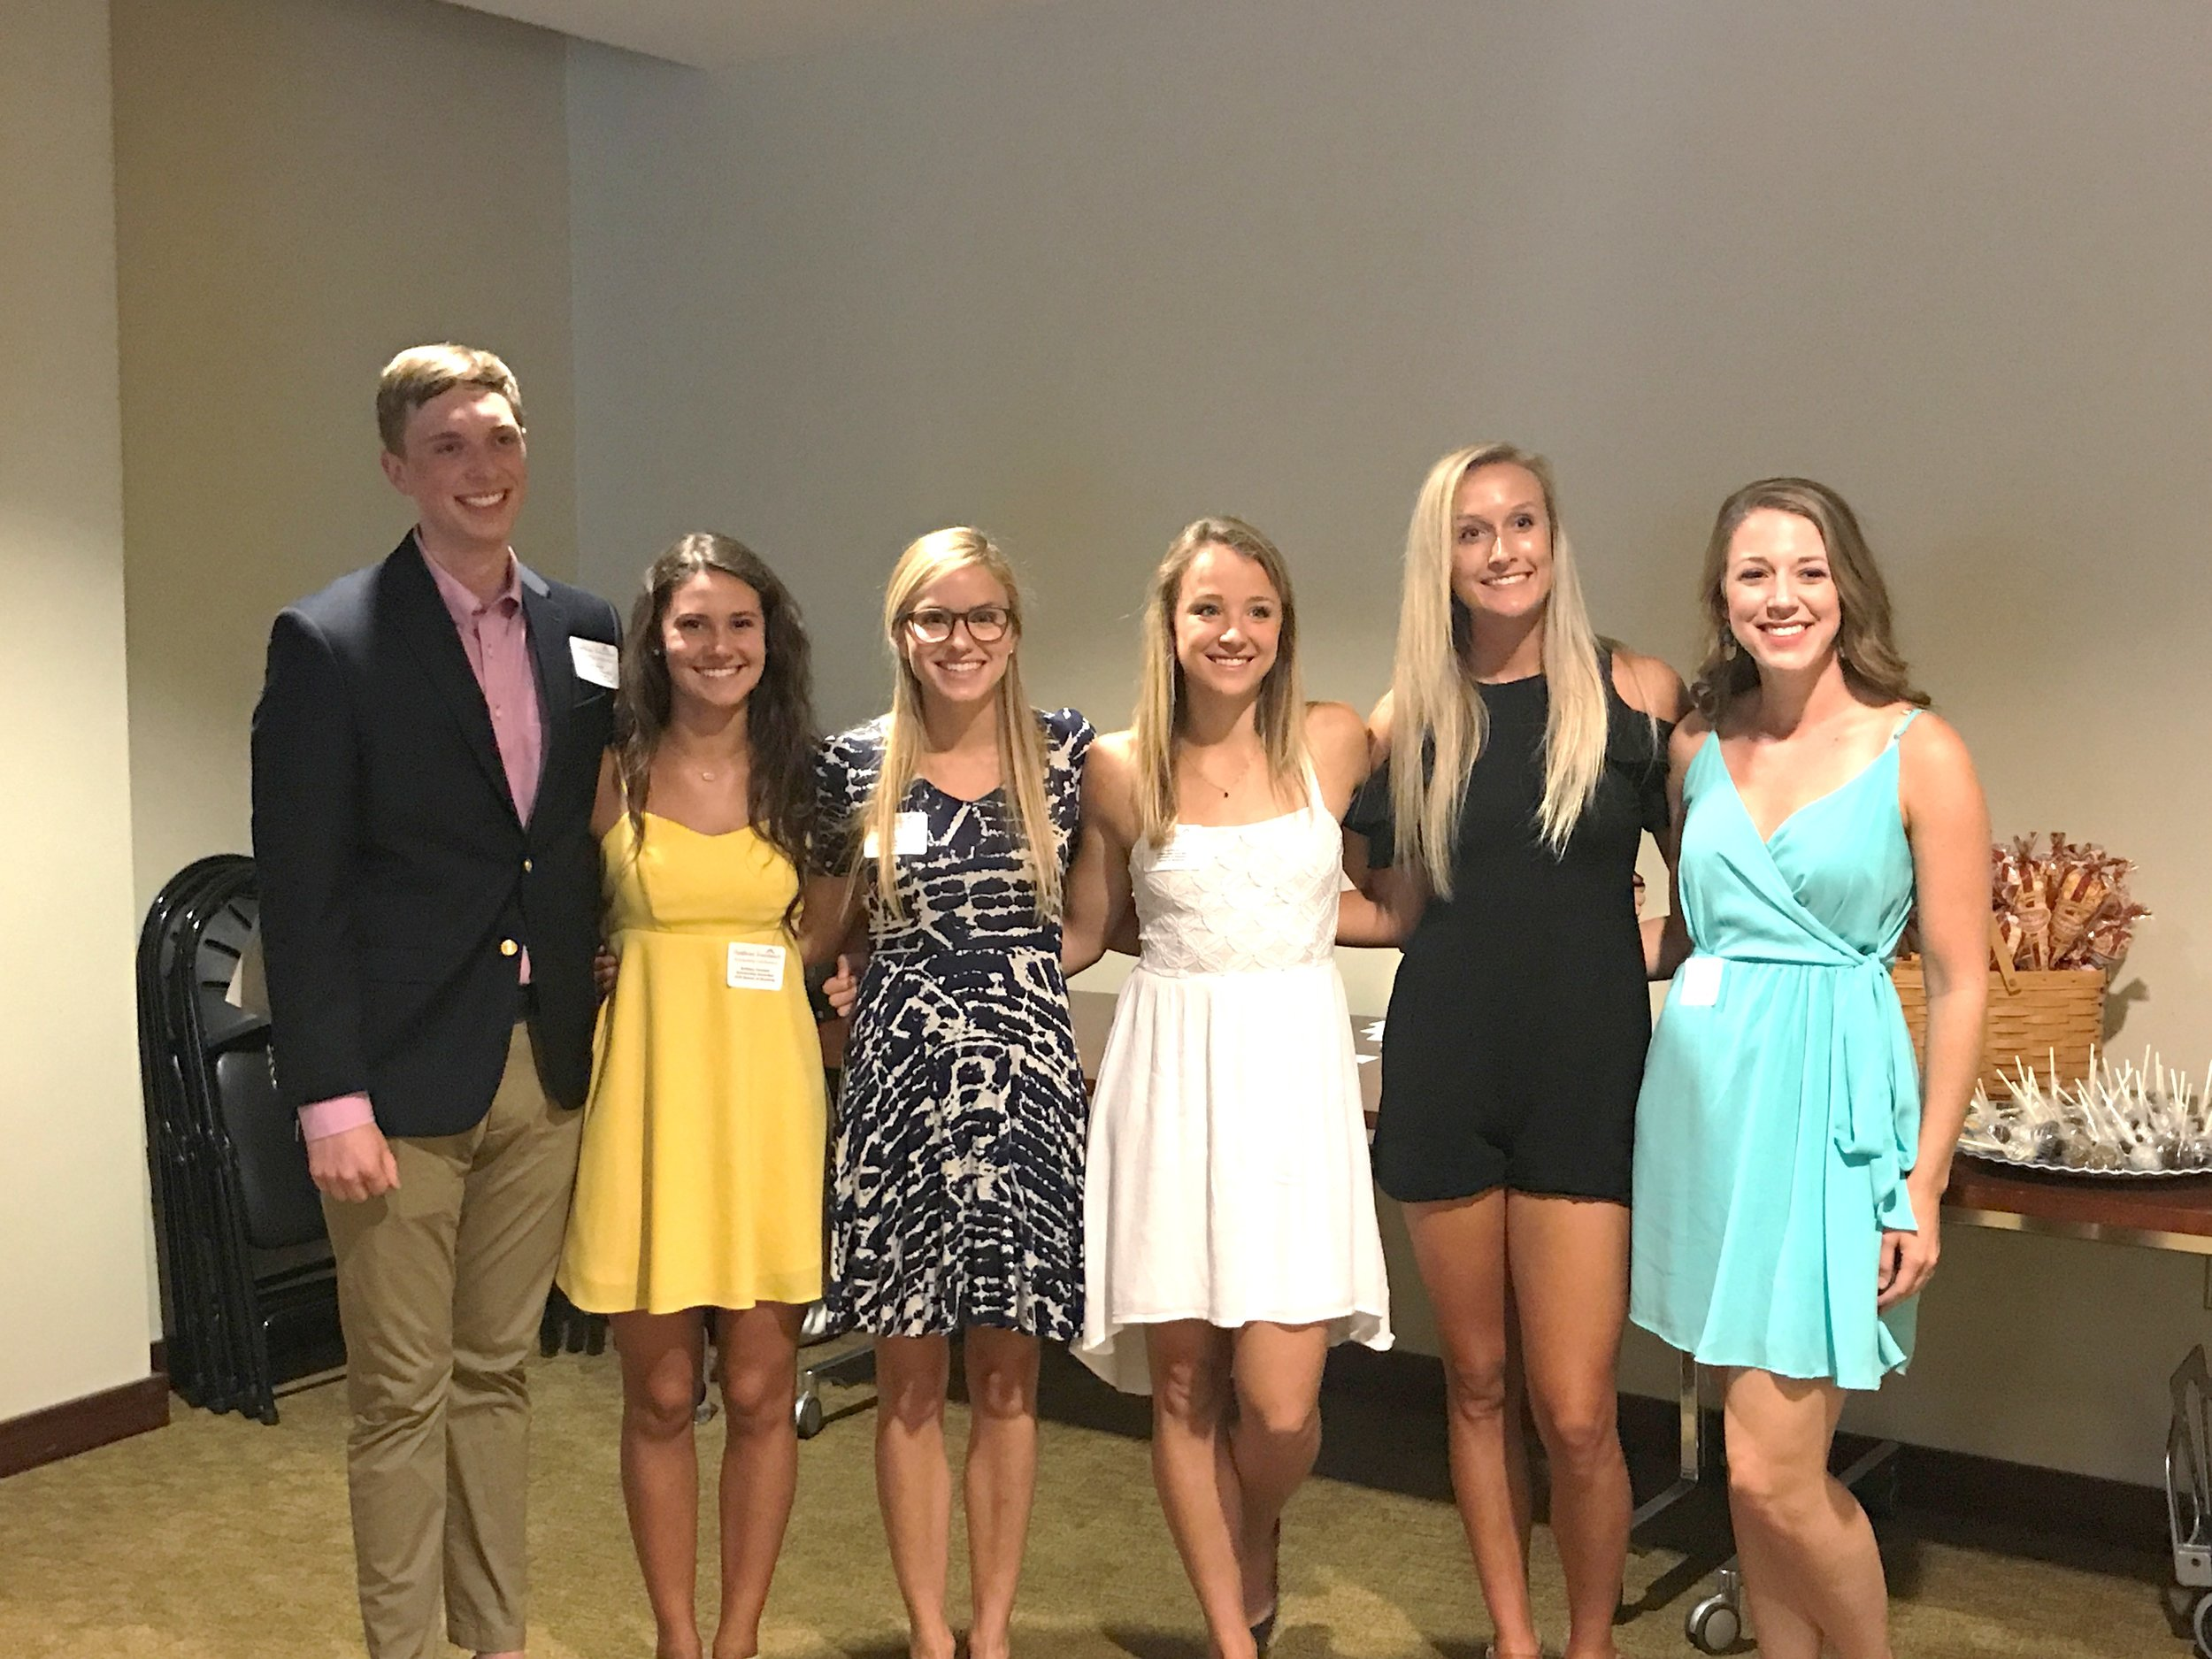 Scholarship recipients on hand for the celebration were (from left) Matt Kamp, Brittany Kendall, Caitlin Lamb, Lisa Morris, Kailin Cordes and Jessica Solis